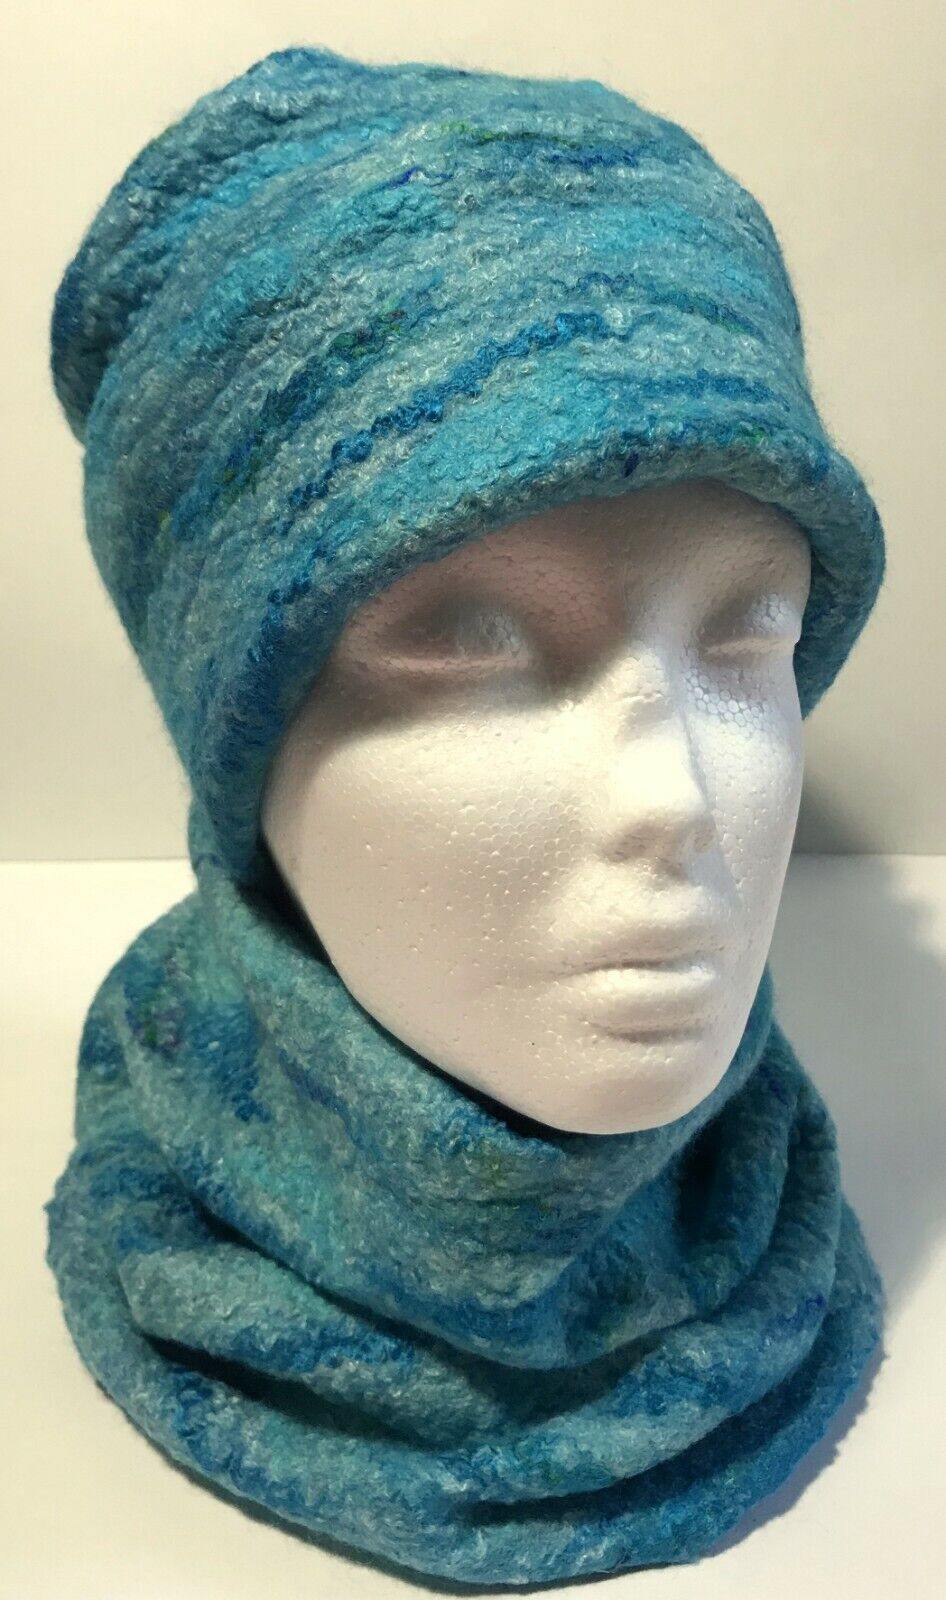 Hand Felted Hat and Neck Cowl, Matching Set, Ocean Blues, Size XS, 54cm Merino